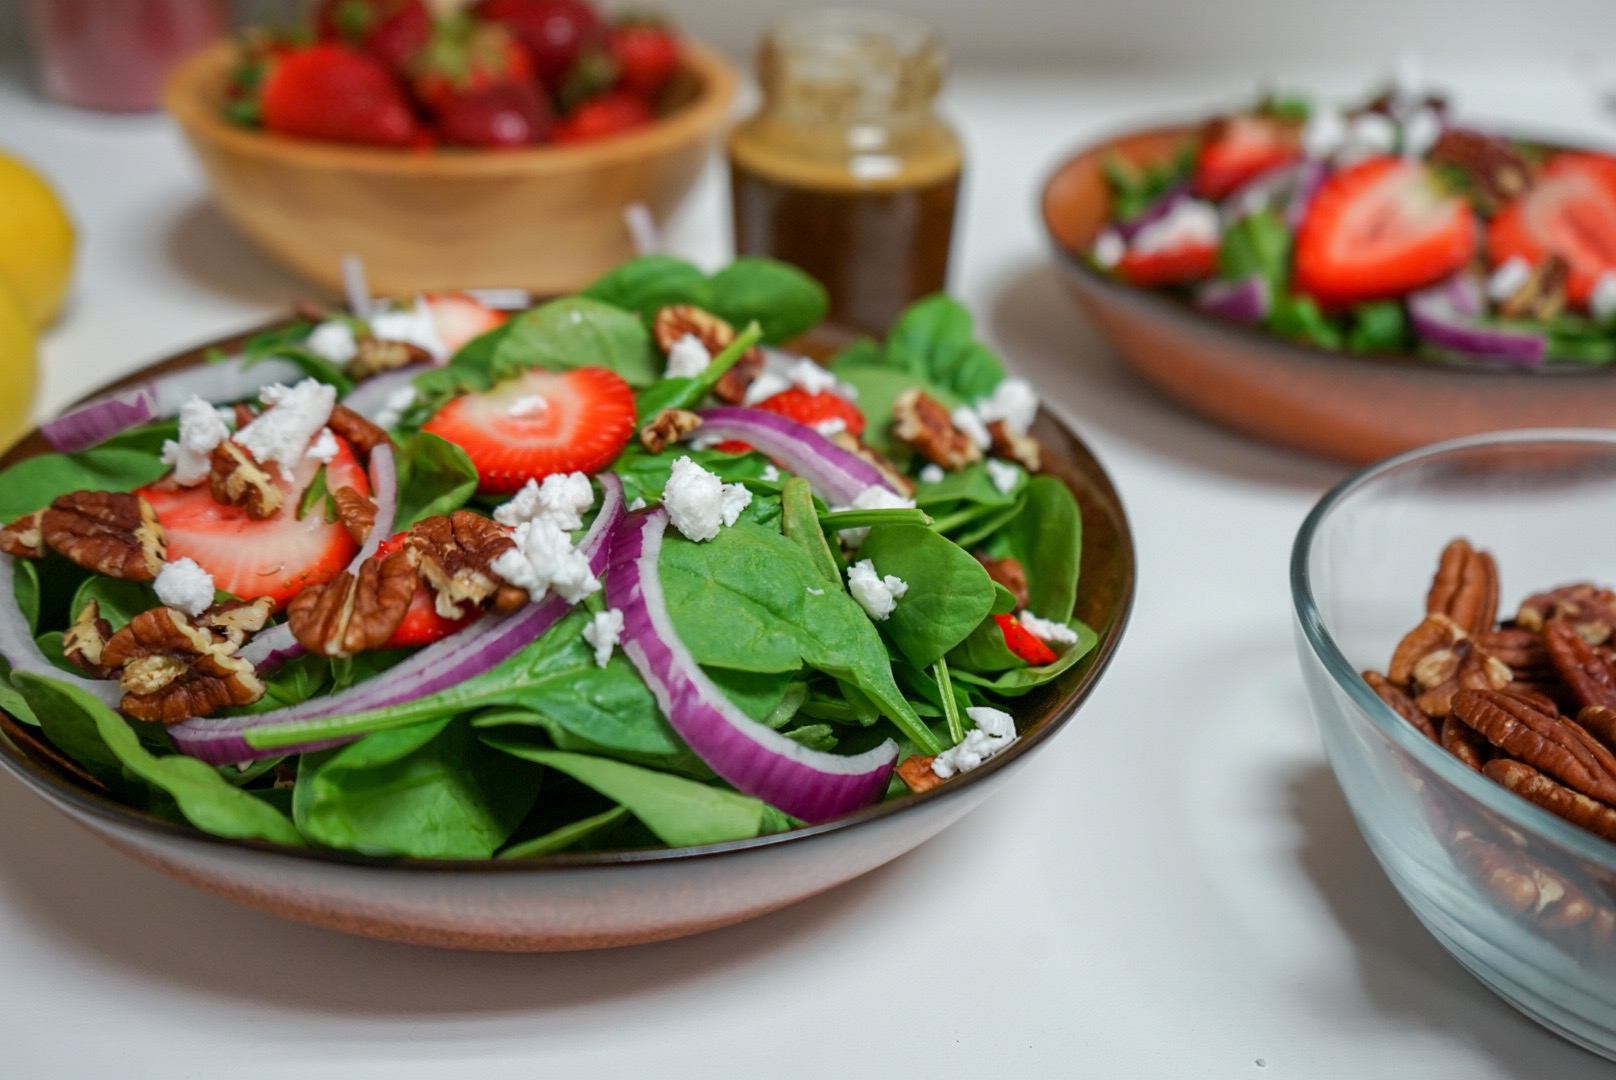 Strawberry Salad with Poppy Seed Dressing